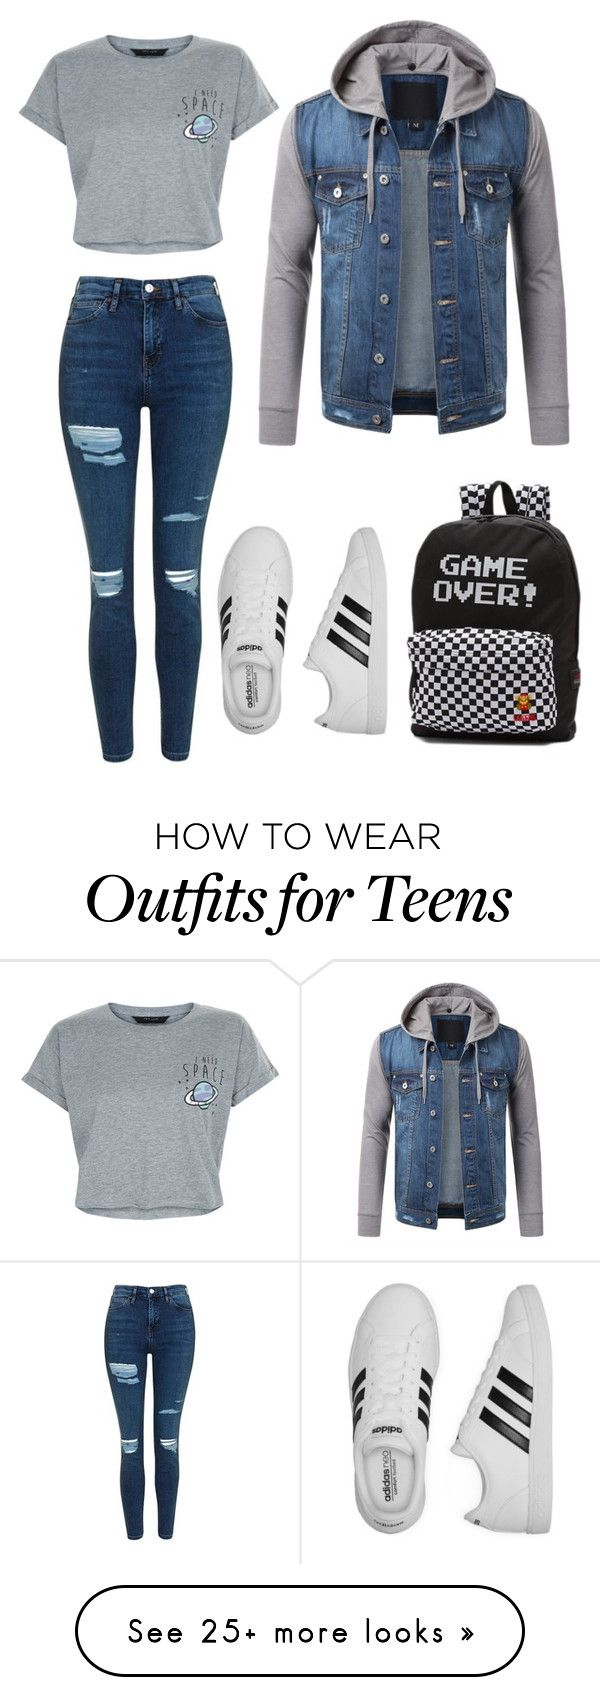 Shirt design new look -  Untitled 5 By Sonumagar On Polyvore Featuring New Look Topshop Adidas